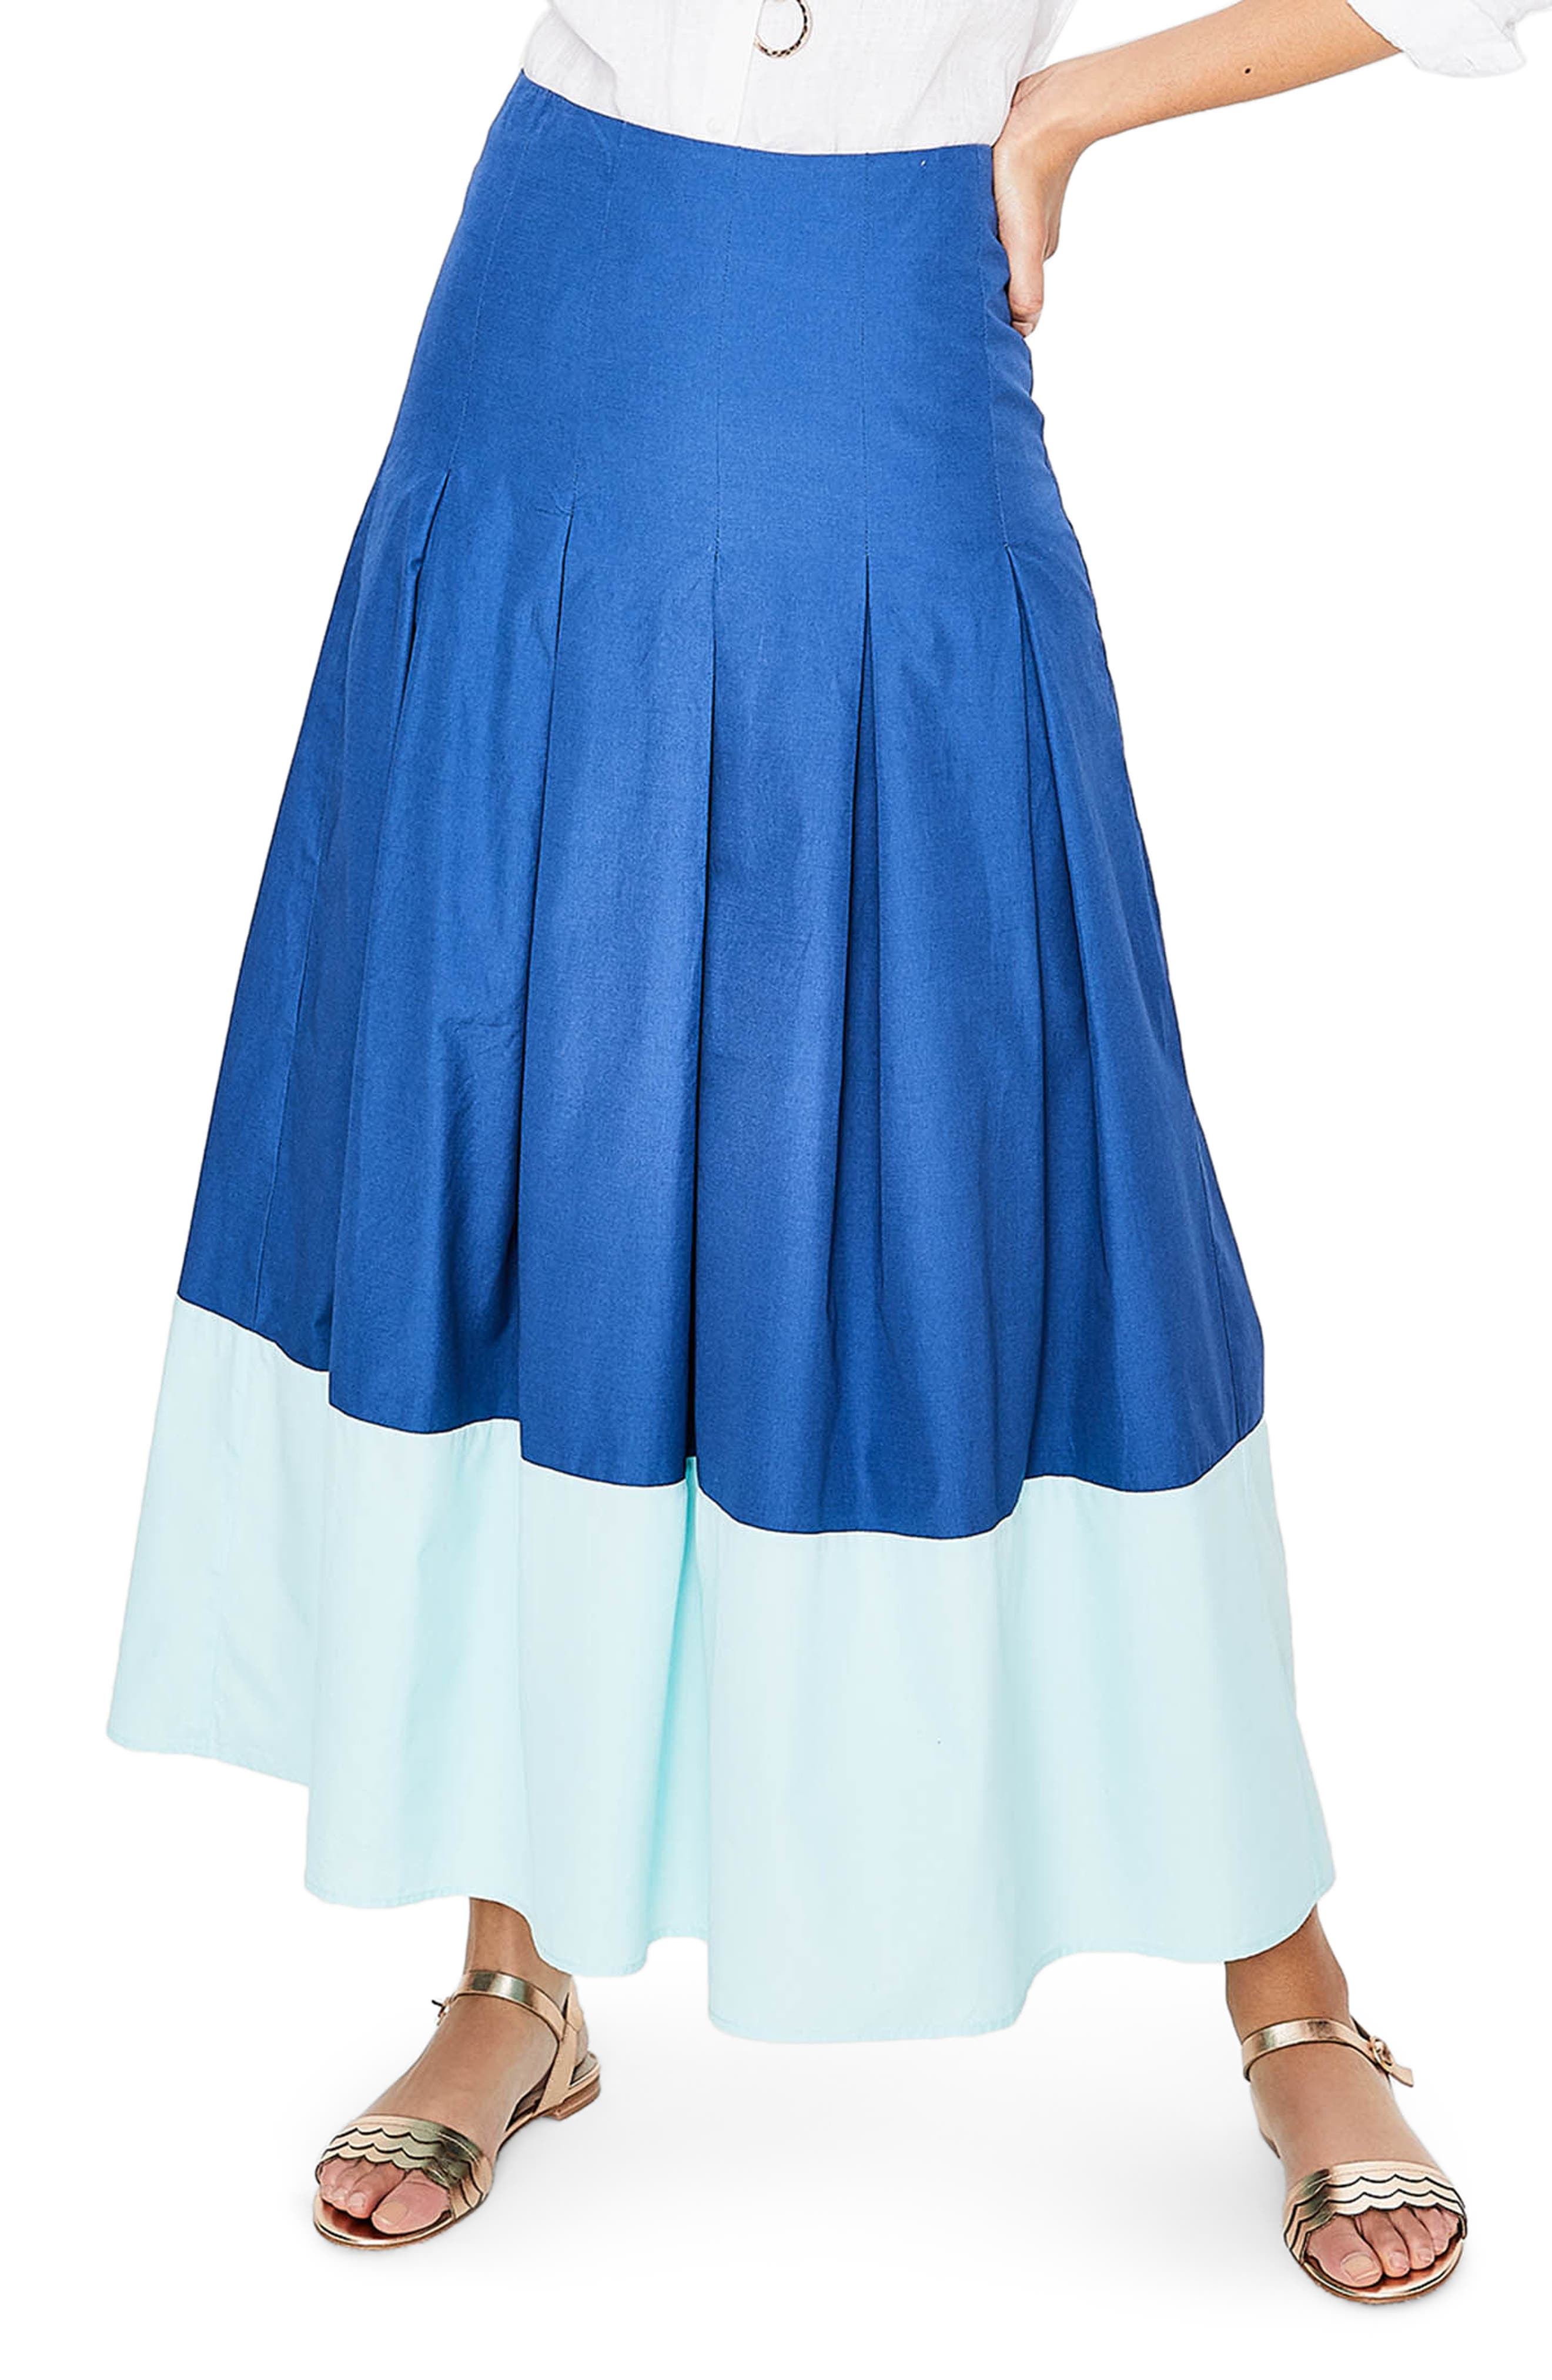 Beatrice Flare Midi Skirt,                         Main,                         color, Riviera Blue W Rippl